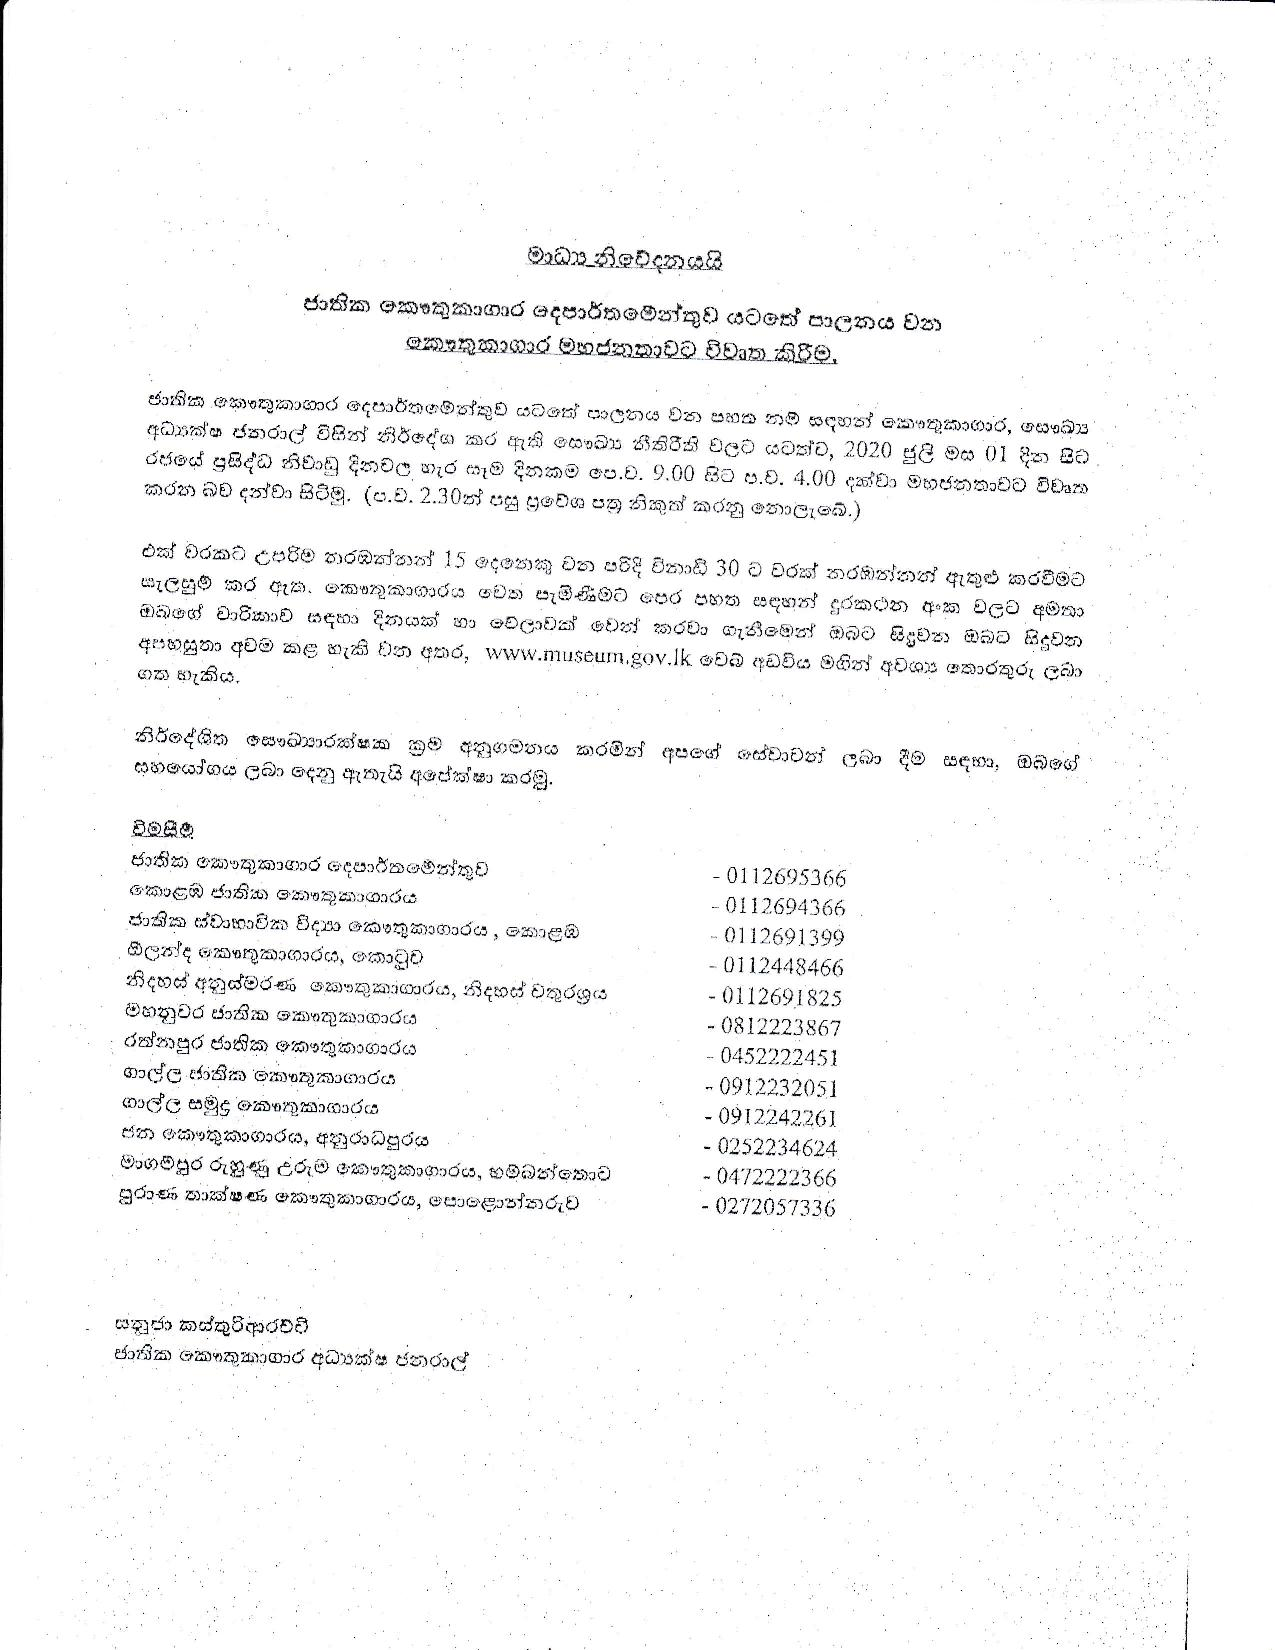 Department of National Museums sinhala page 002